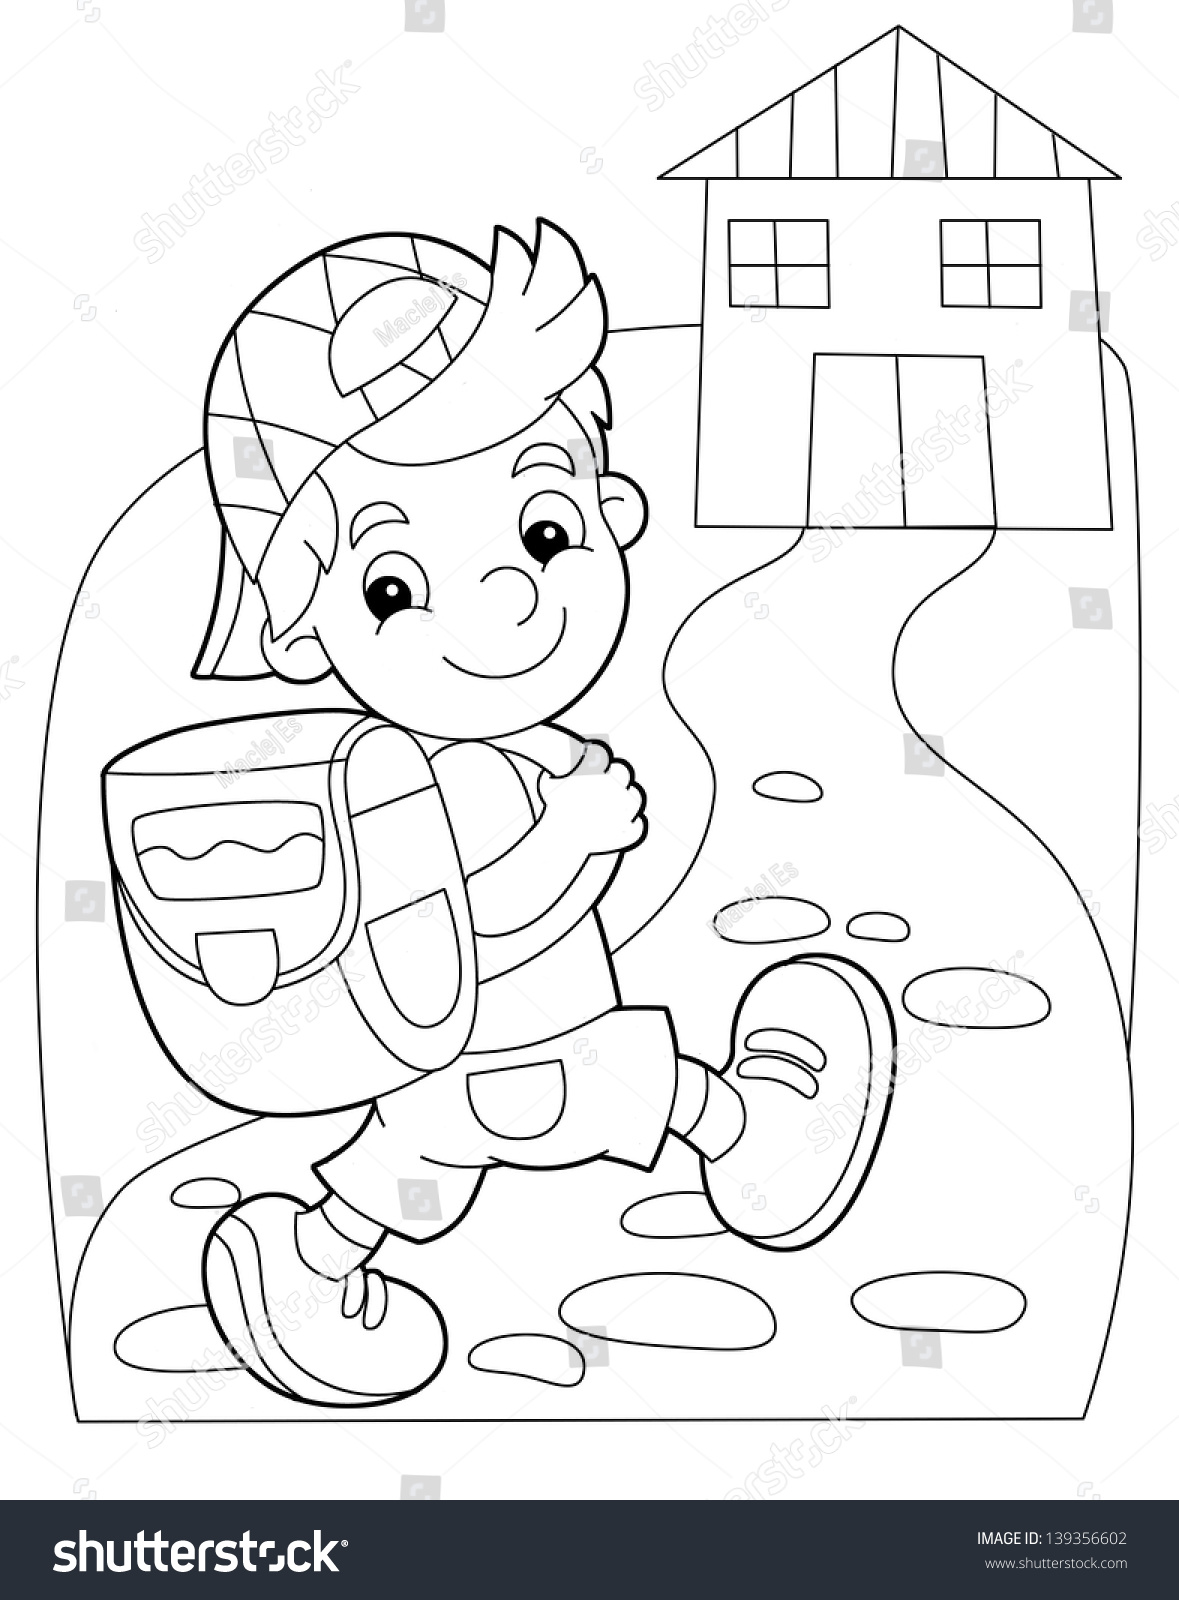 Coloring Plate Kid Going School Illustration Stock Illustration ...